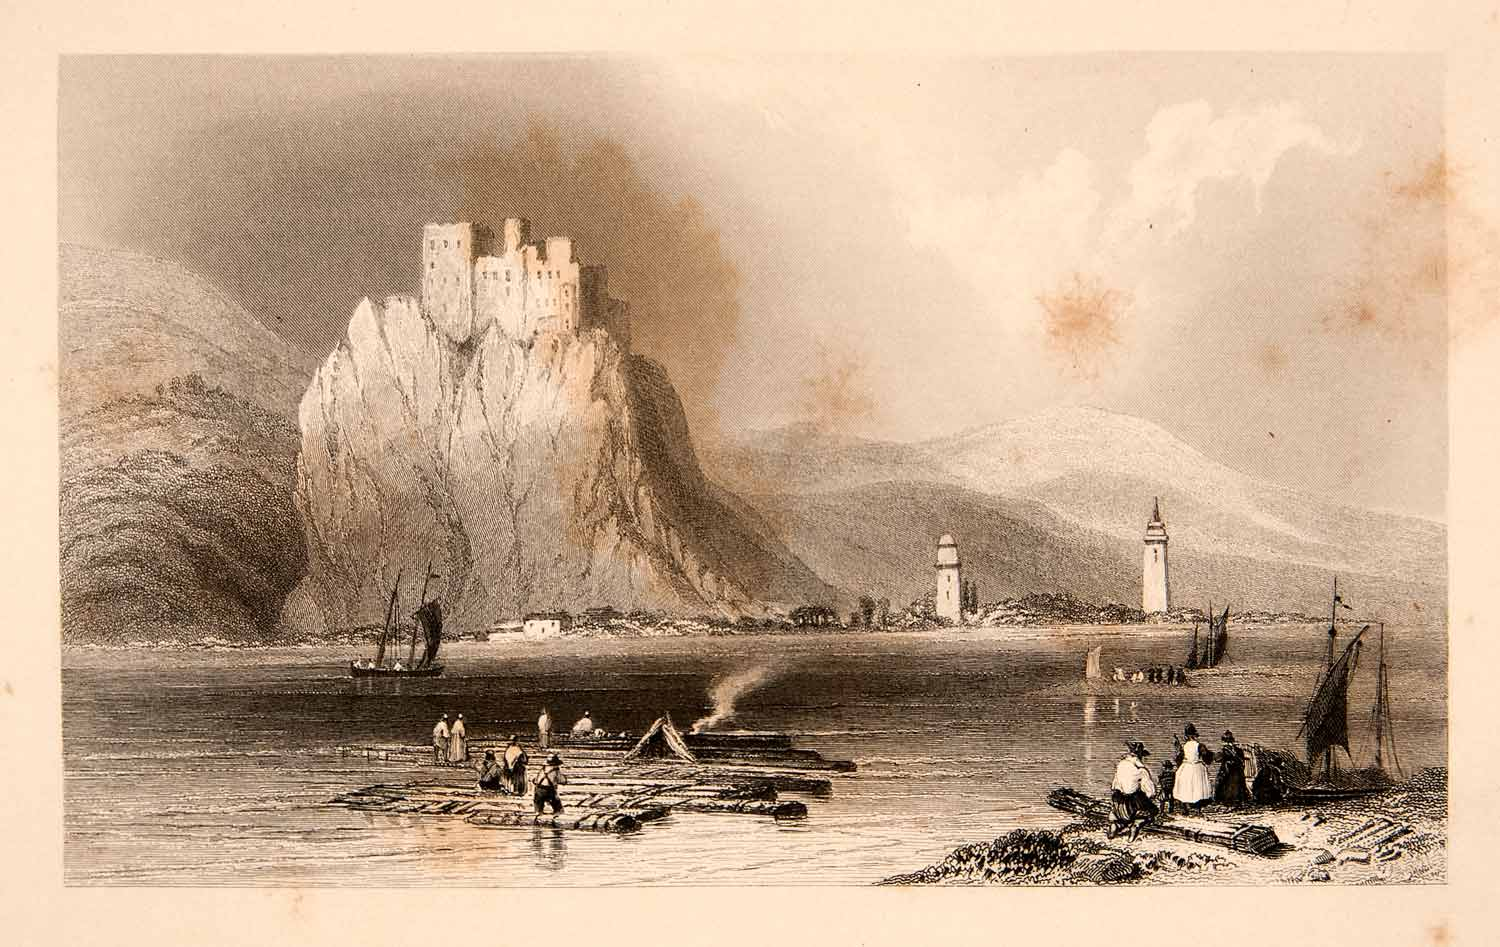 1840 Steel Engraving Castle Betzko Hungary Danube River Historic Landmark XGEC1